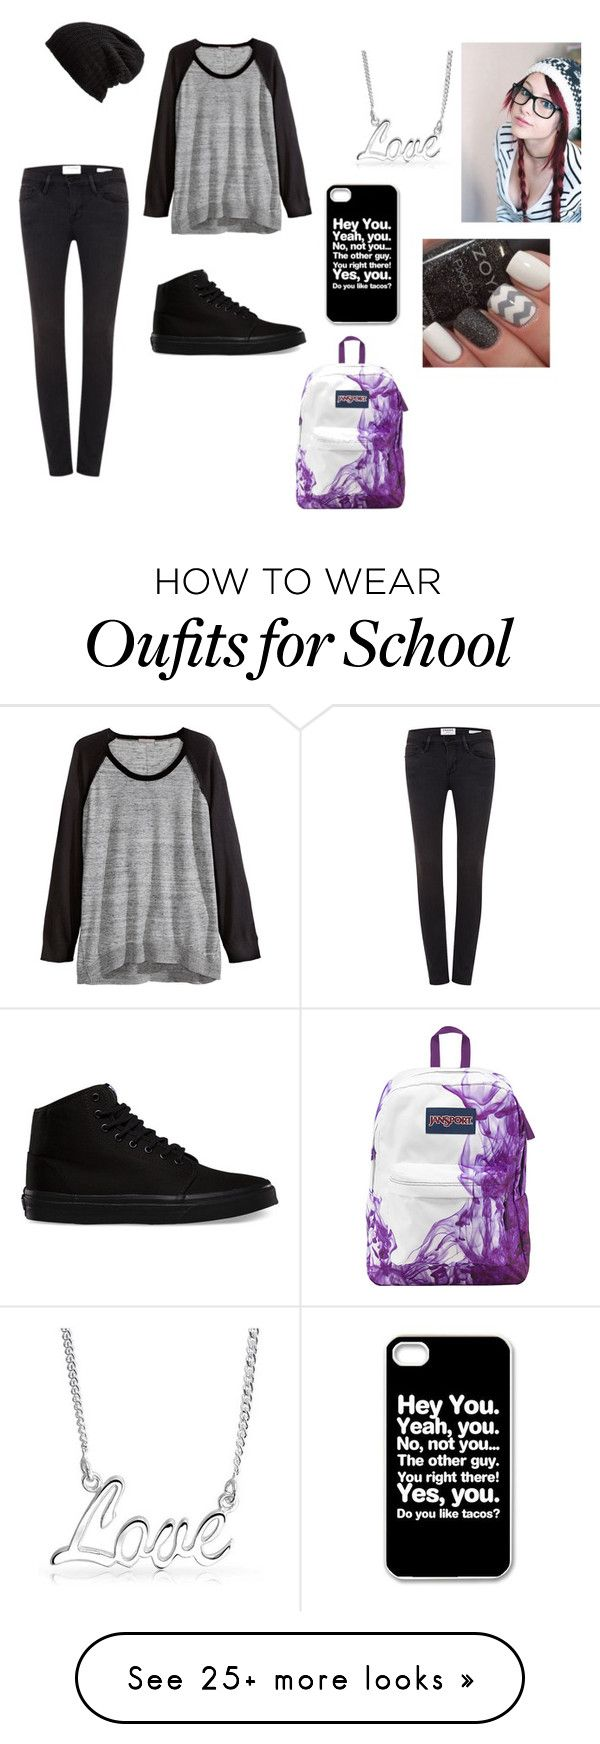 """my school outfit- Ashley"" by lauren2900 on Polyvore featuring Frame Denim, H&M, Bling Jewelry, Free People, Vans and JanSport"